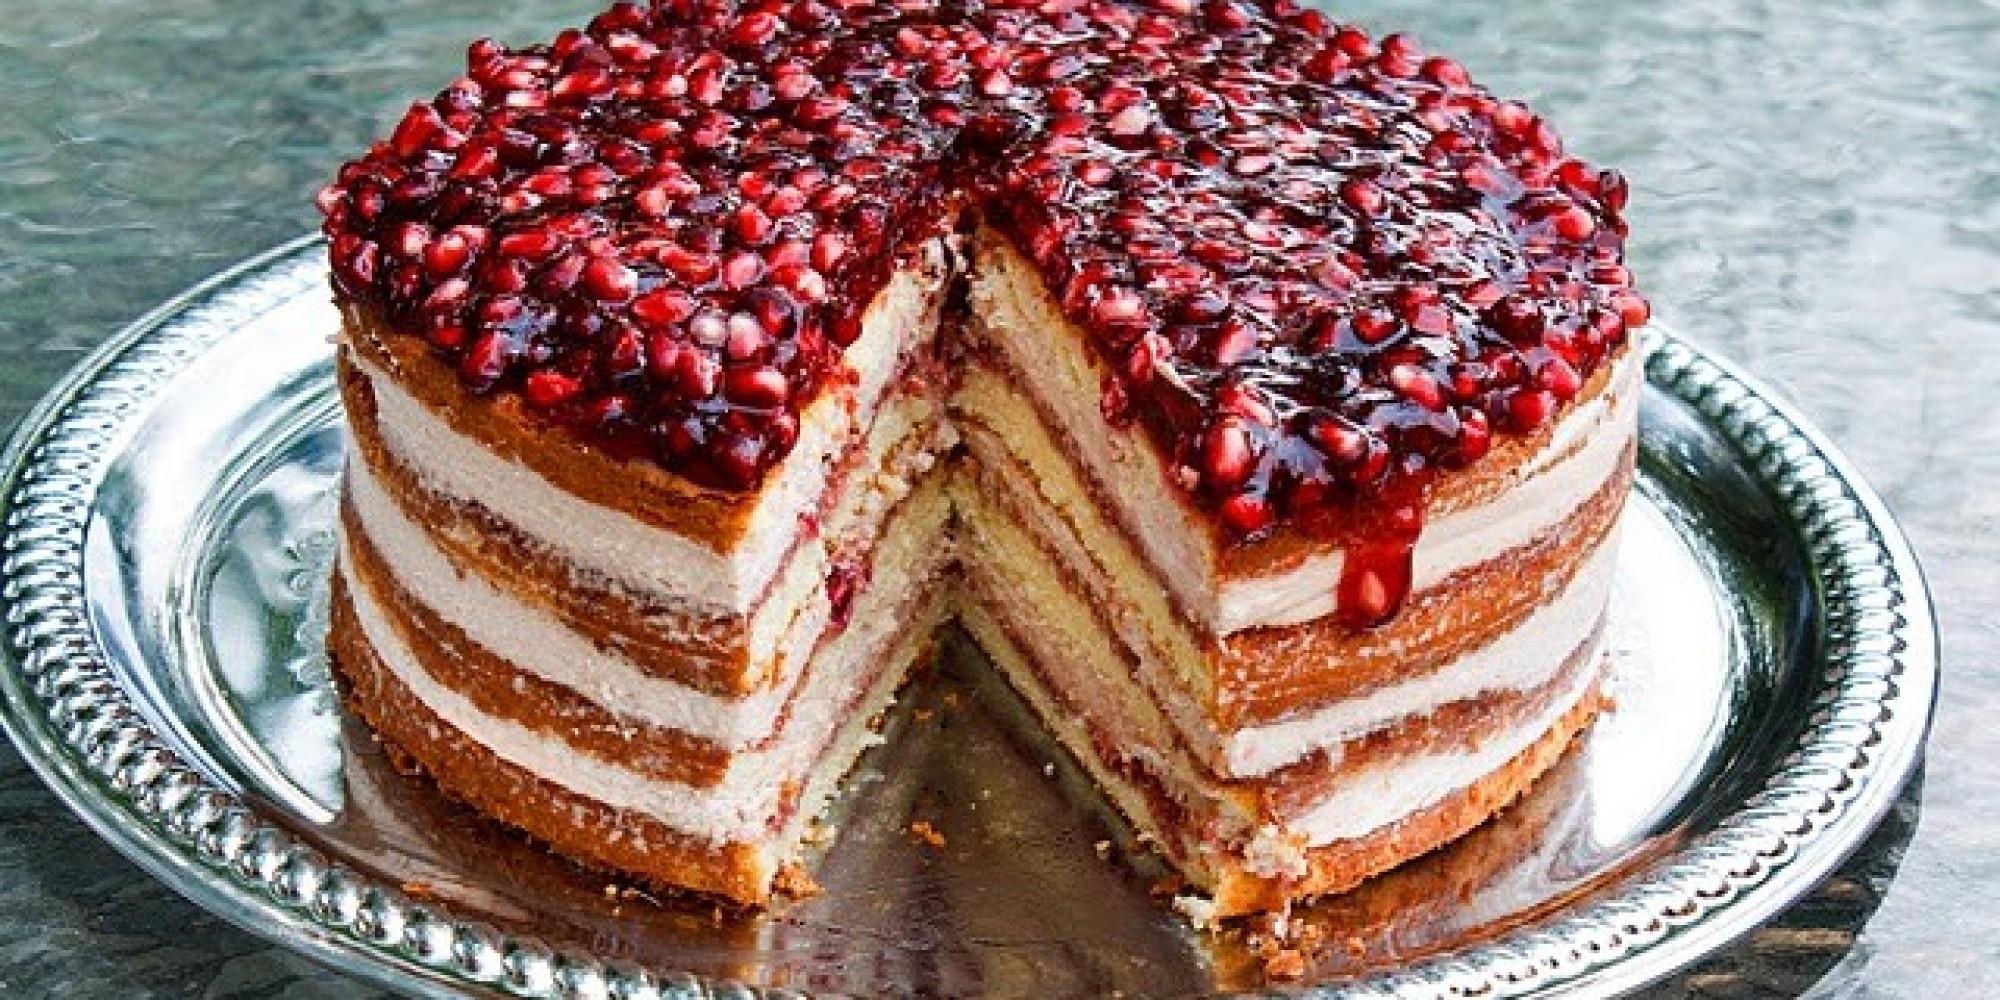 Best Christmas Dessert  The Most Stunning Christmas Dessert Recipes Ever PHOTOS